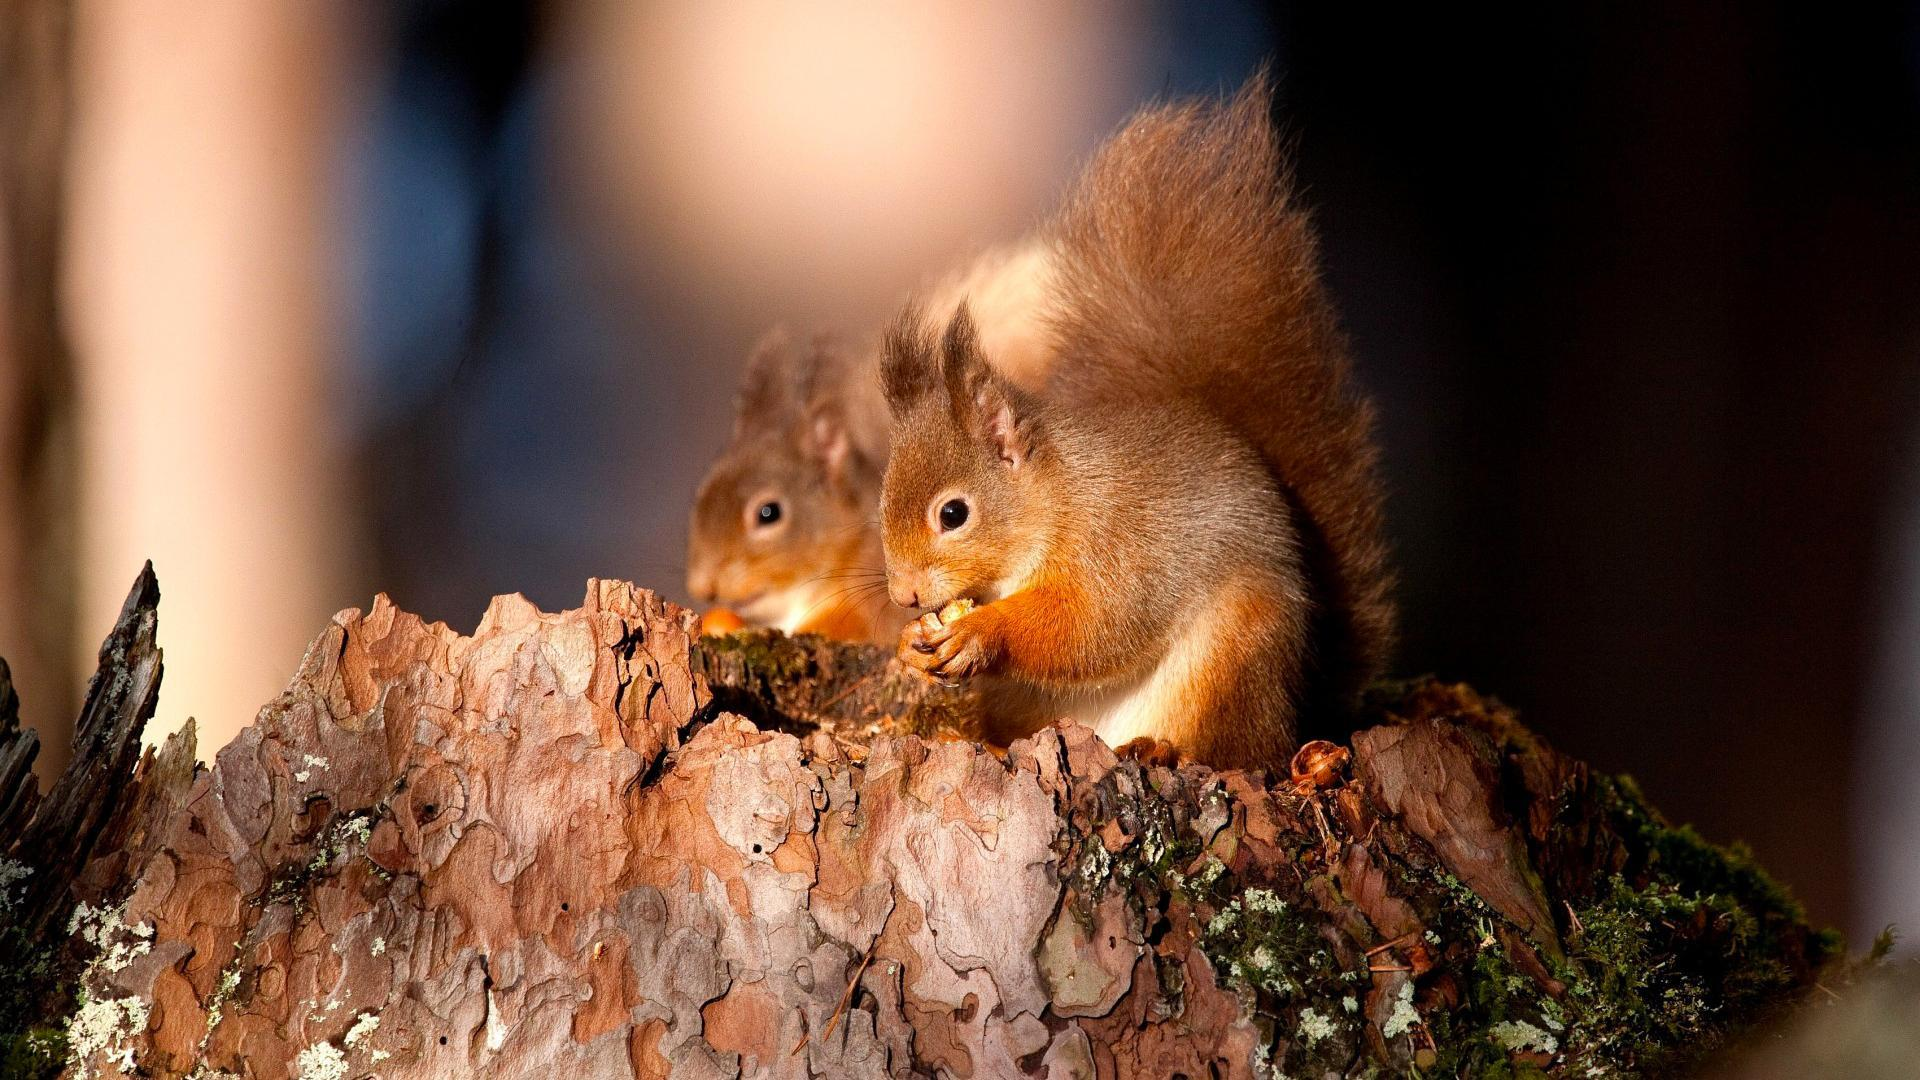 Squirrel Wallpapers 34487 1920x1080 px ~ HDWallSource